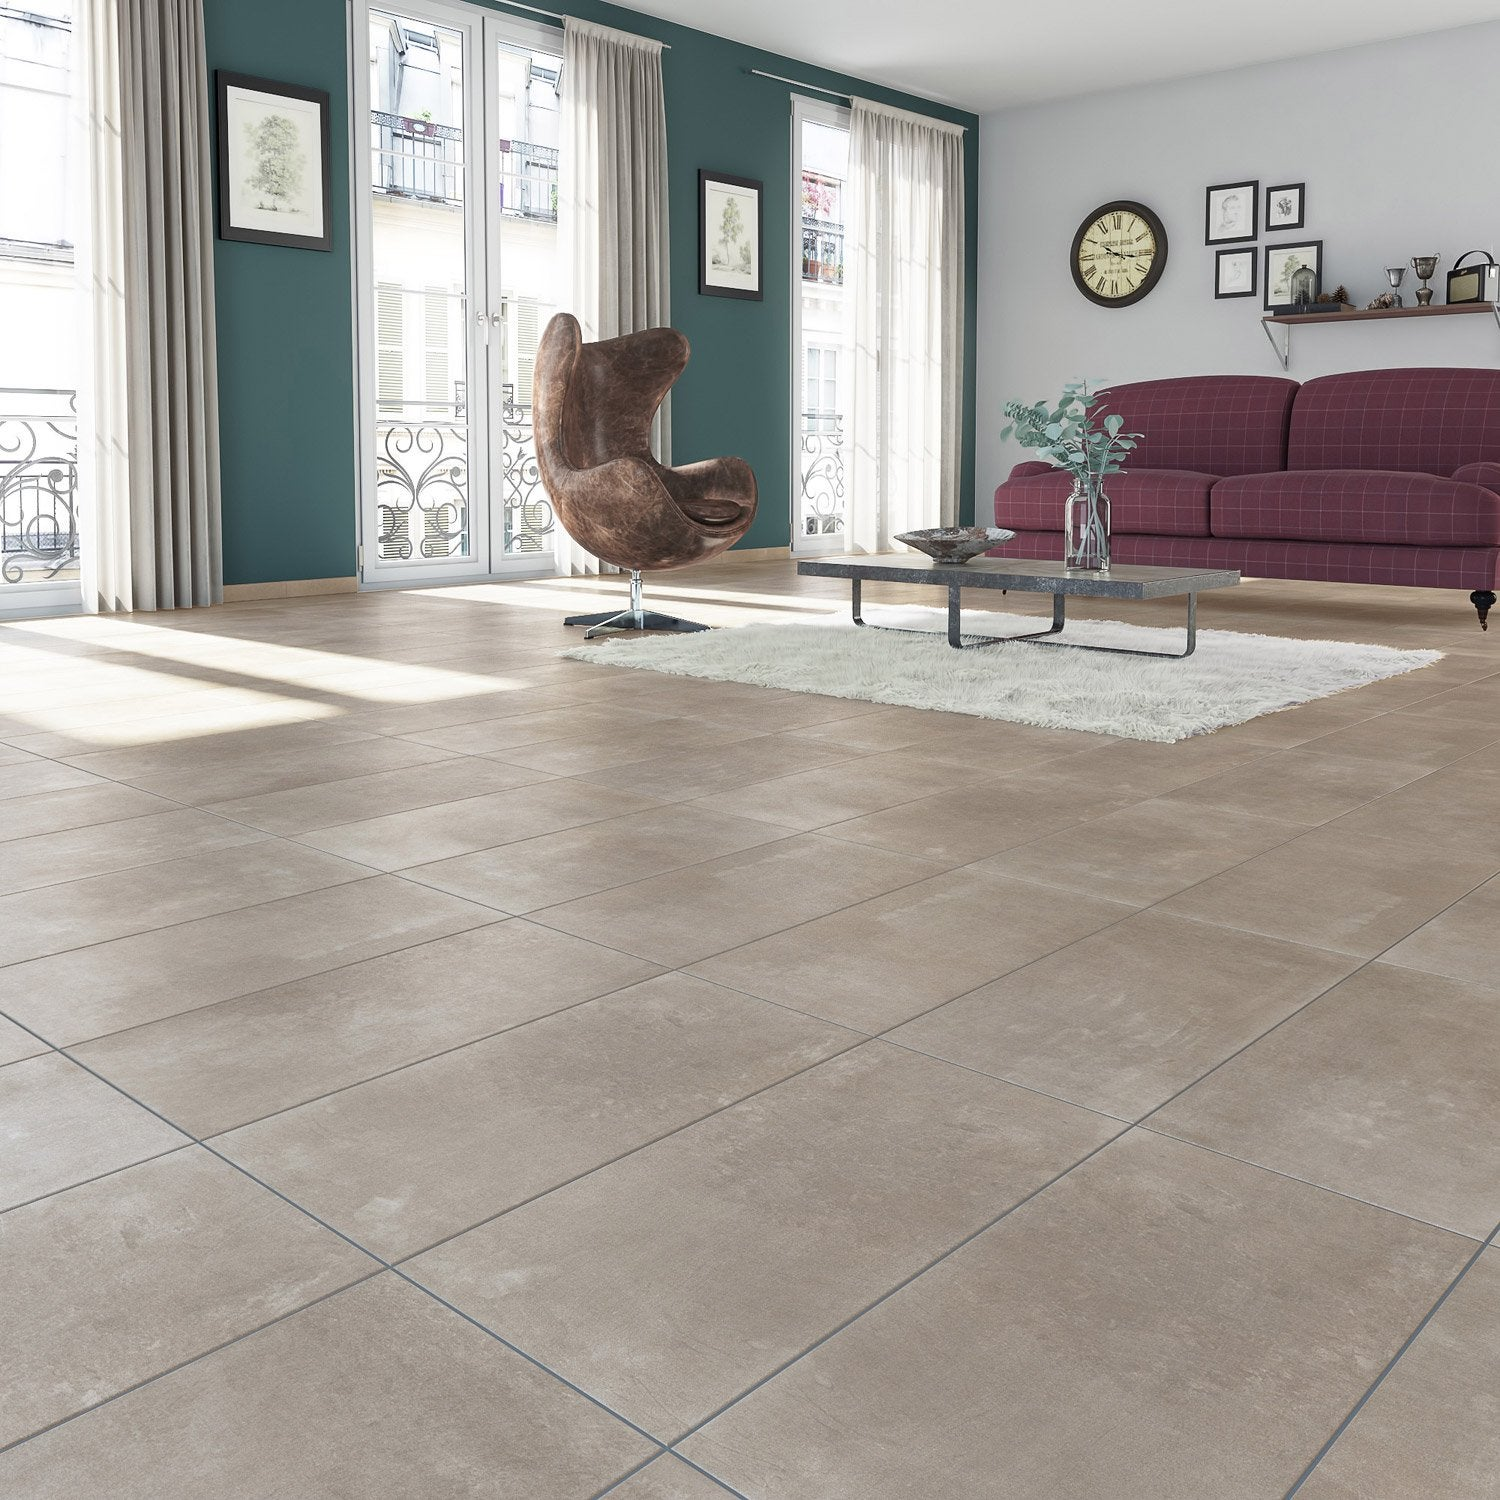 Carrelage sol et mur taupe effet b ton new cottage x for Carrelage taupe cuisine